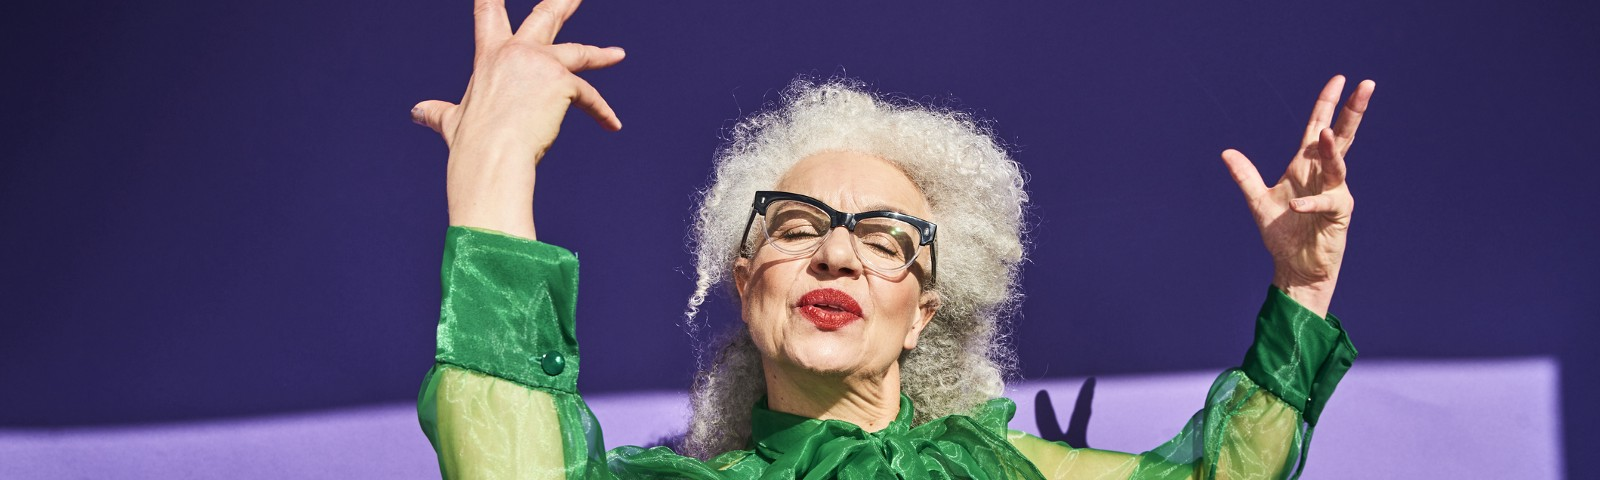 Confident senior woman in green against a violet background throwing up a confident pose.